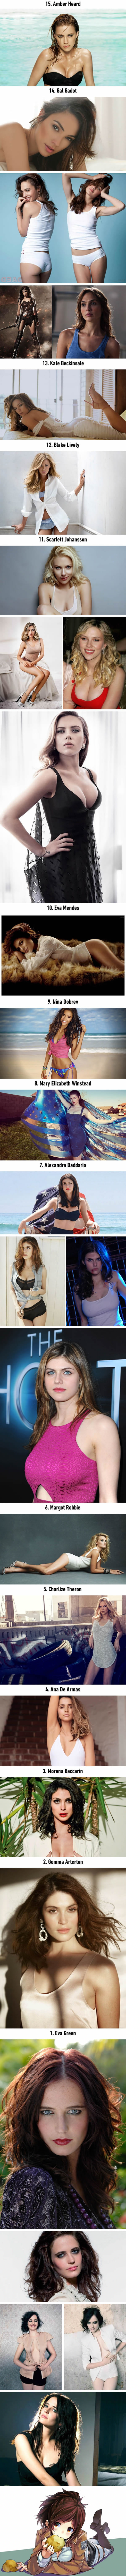 15 Hottest Actresses In Hollywood Today